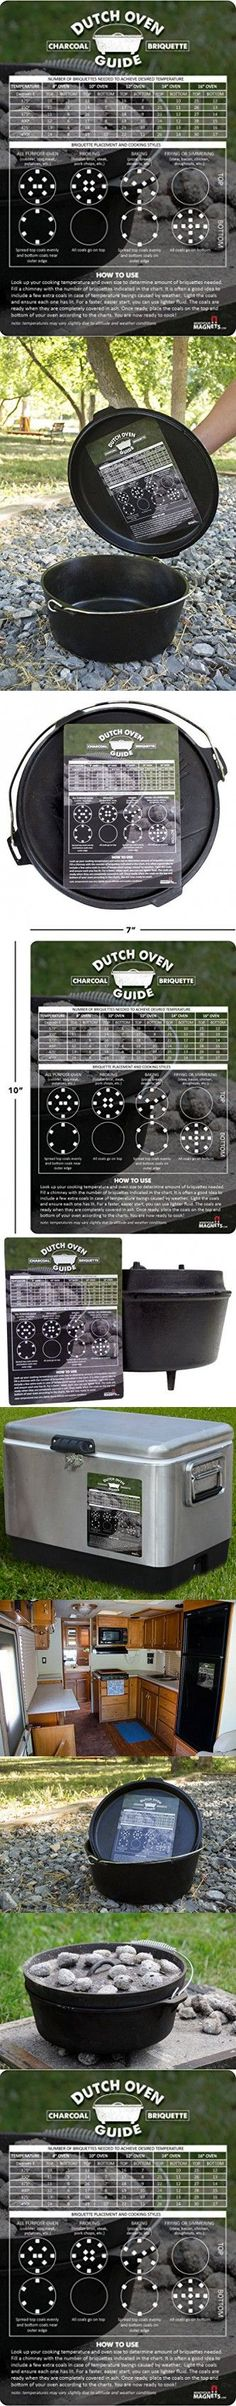 Dutch Oven Charcoal Briquettes Magnetic Cheat Sheet / Briquette Temperature Conversion Chart - The Perfect Fridge Magnet to Add To Your Dutch Oven Cookbook, Camping Gear and RV Accessories! Best Camping Gear, Camping Items, Camping List, Camping Meals, Camping Hacks, Camping Cooking, Camping Stuff, Temperature Conversion Chart, Dutch Oven Cooking